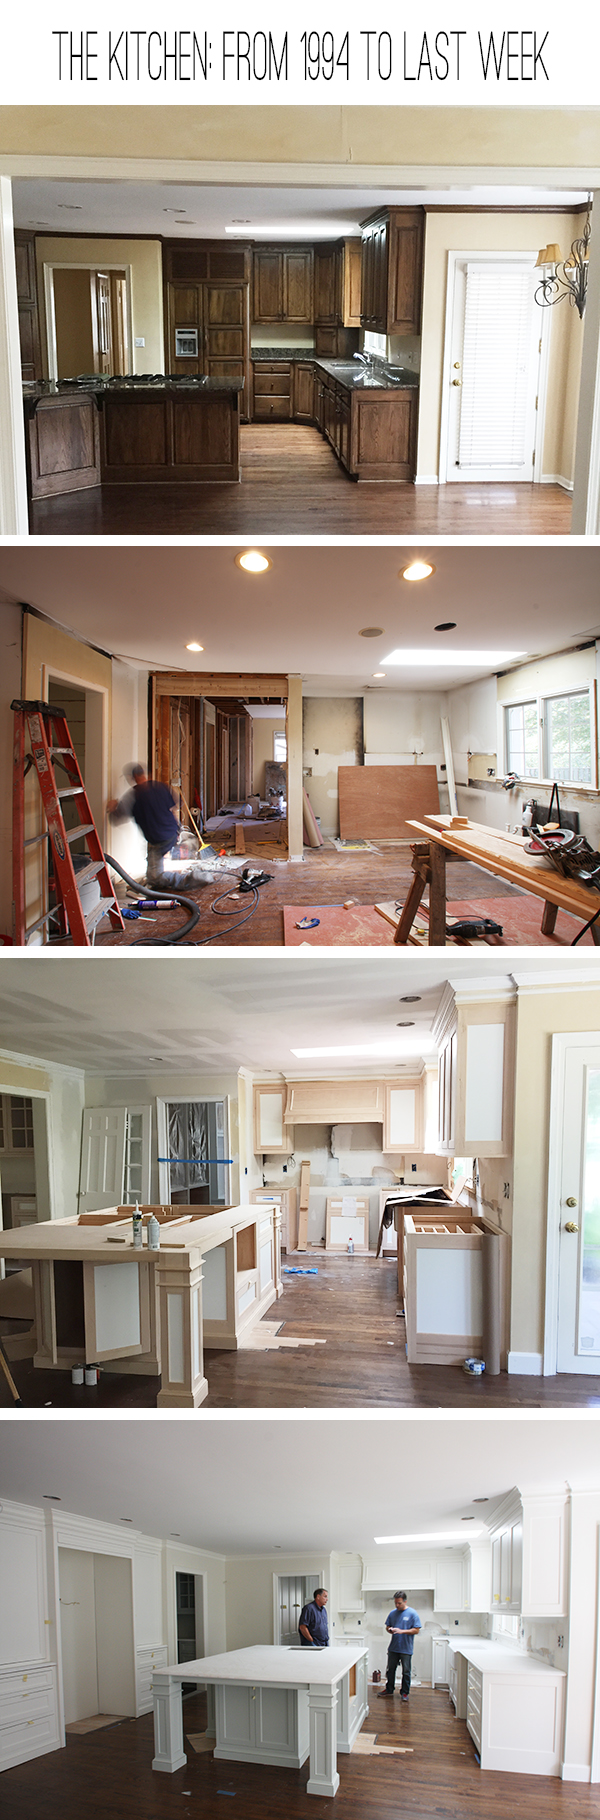 4 stages of the kitchen remodel